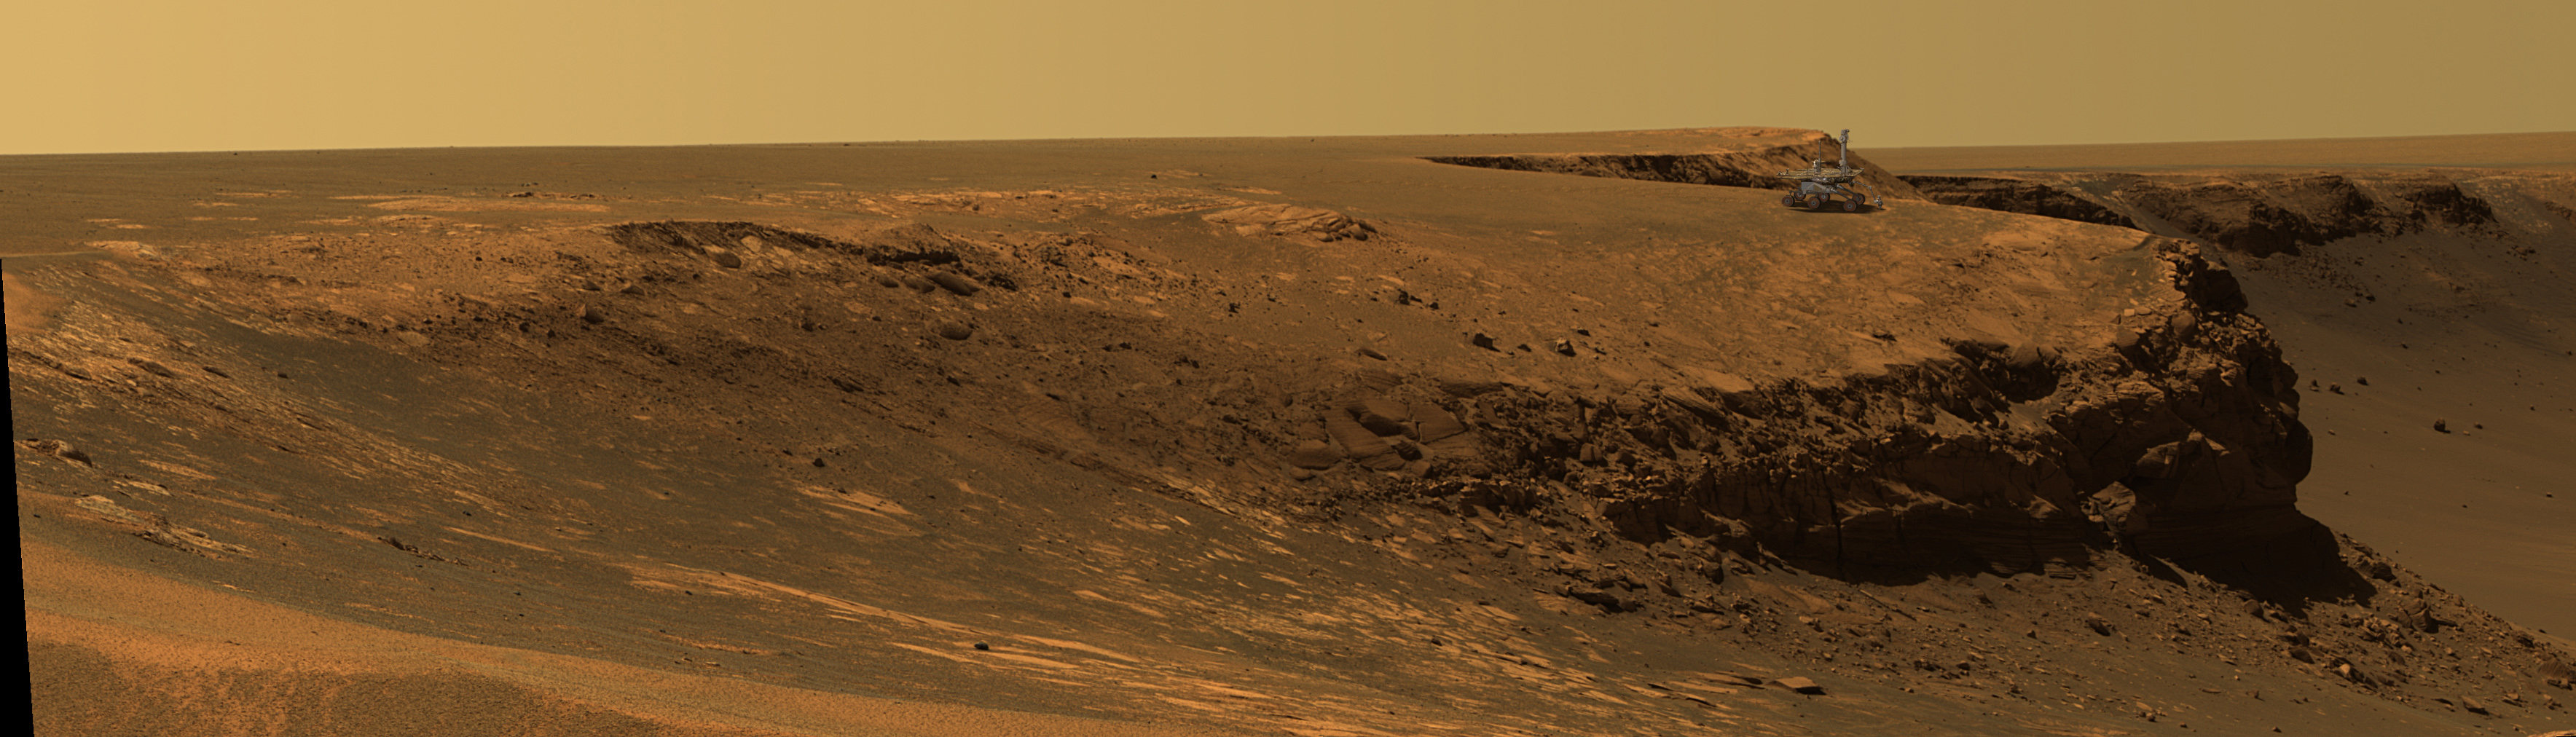 Land Rover Pasadena >> Mars Exploration Rover Mission: Special-Effects Images: Opportunity